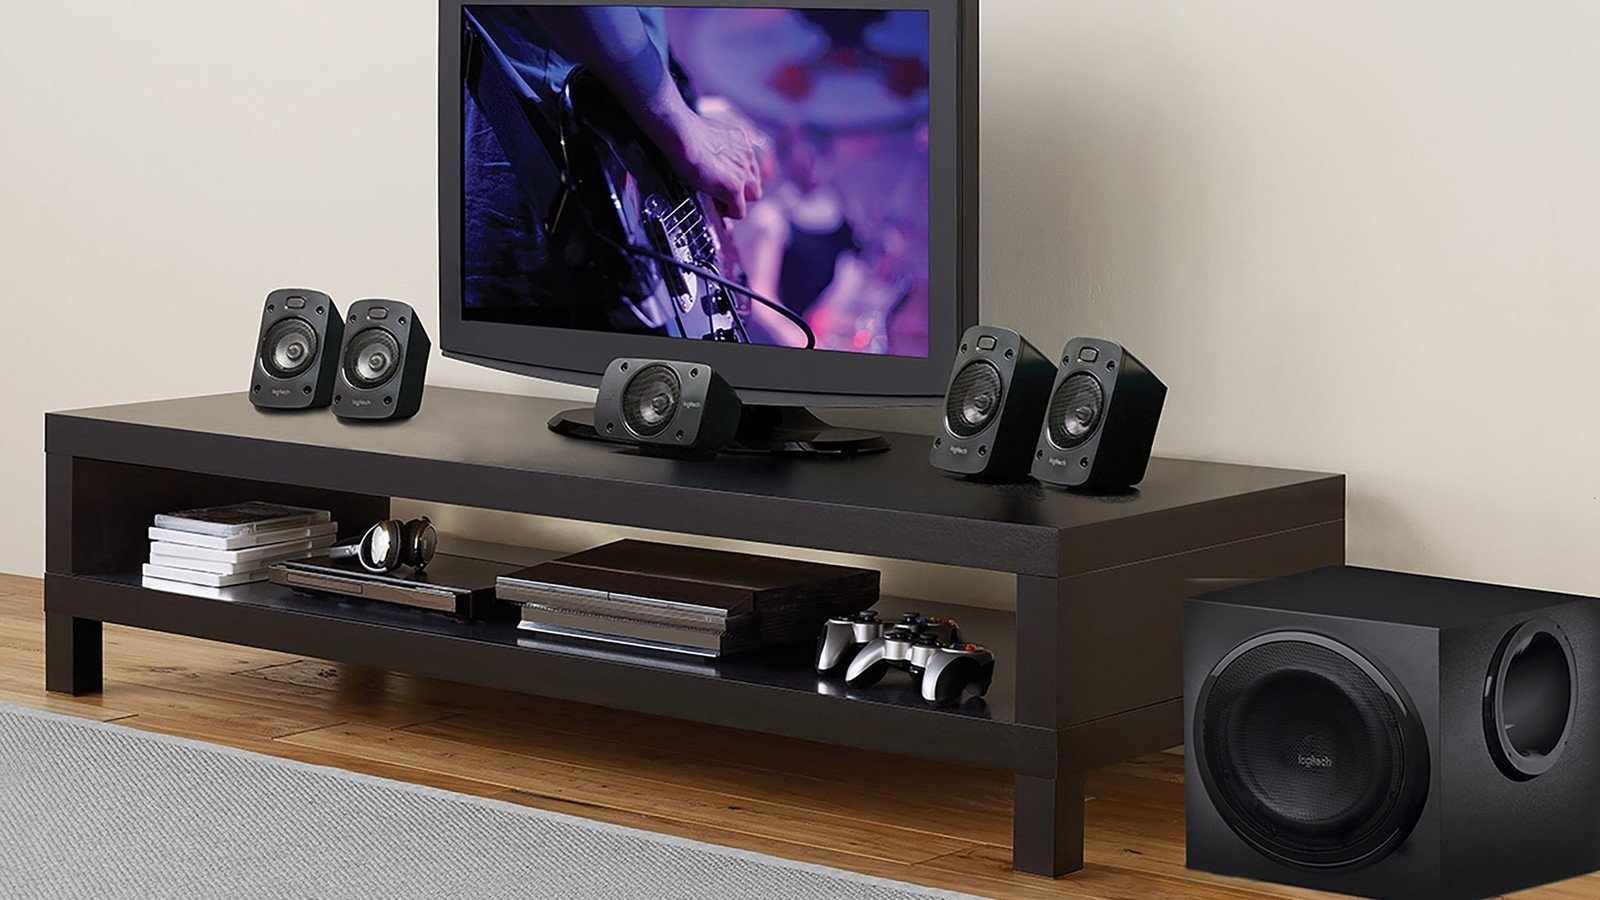 Best Home Theatre Systems Under 500 Buying guide